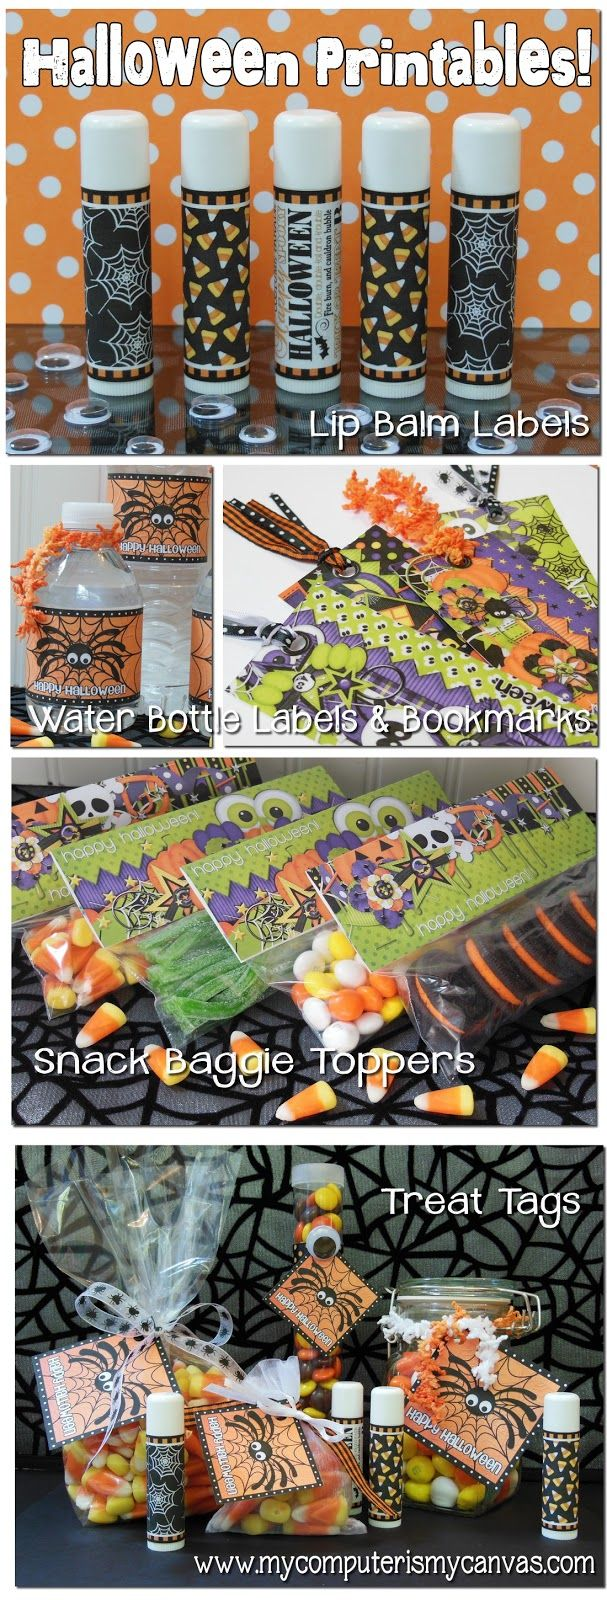 Lots of Halloween Printables... lip balm labels, water bottle labels, bookmarks, snack baggie toppers and treat tags!